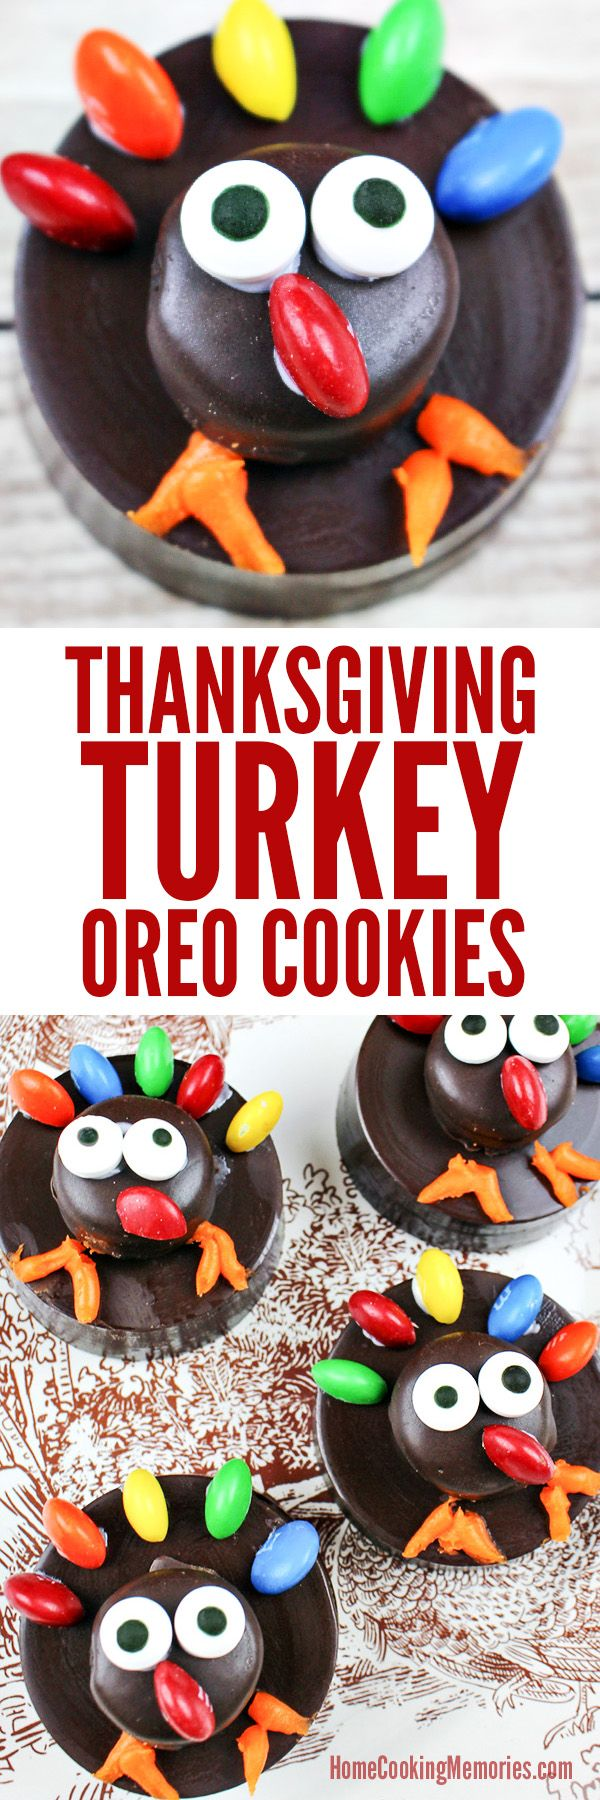 Fun & Easy Thanksgiving Turkey OREO Cookies! These cute (and slightly goofy) turkeys are great Thanksgiving food craft for kids and perfect for class parties, potlucks, or as part of your holiday table place settings.